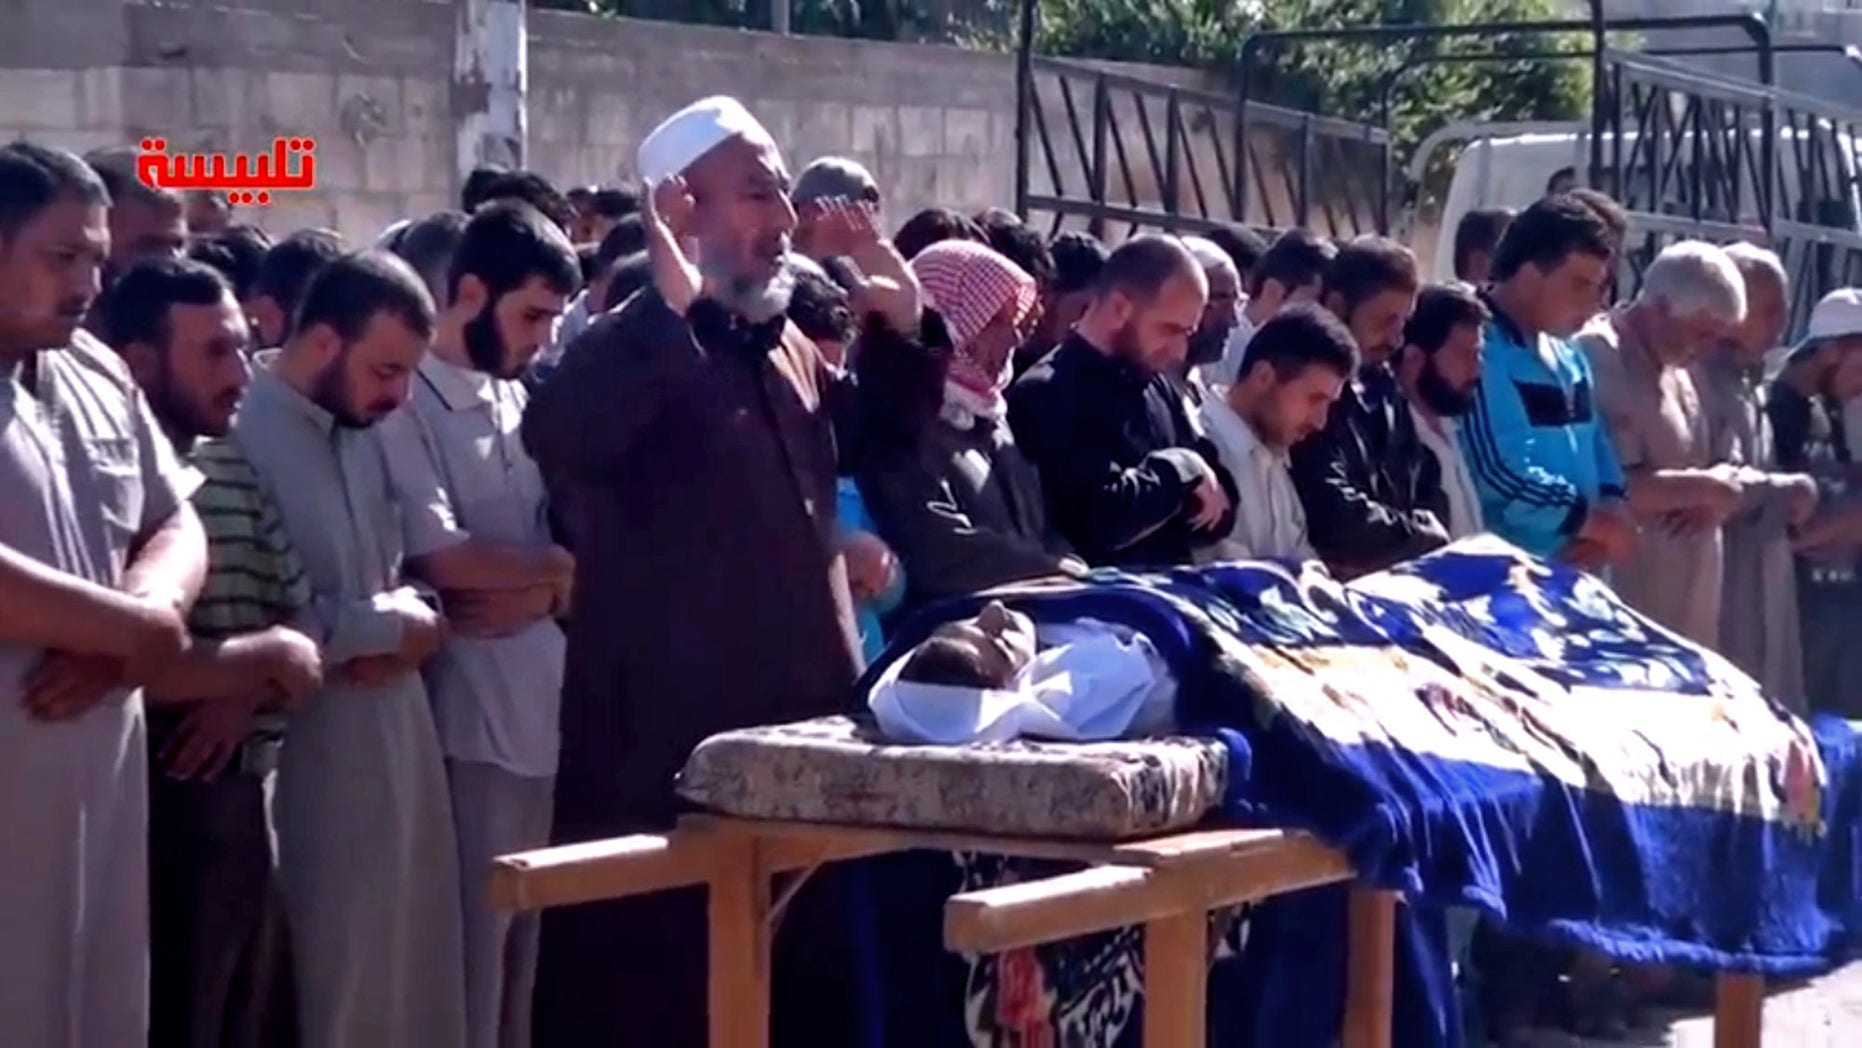 """In this image taken from video obtained from the Shaam News Network, which has been authenticated based on its contents and other AP reporting, Syrians participate in the  funeral prayer for Youssef Ghazi al-Sarmani who was killed in fighting between rebel and government forces, Monday, May 27, 2013. Logo in red reads, """"Talbiseh"""". (AP Photo/Shaam News Network via AP video)"""